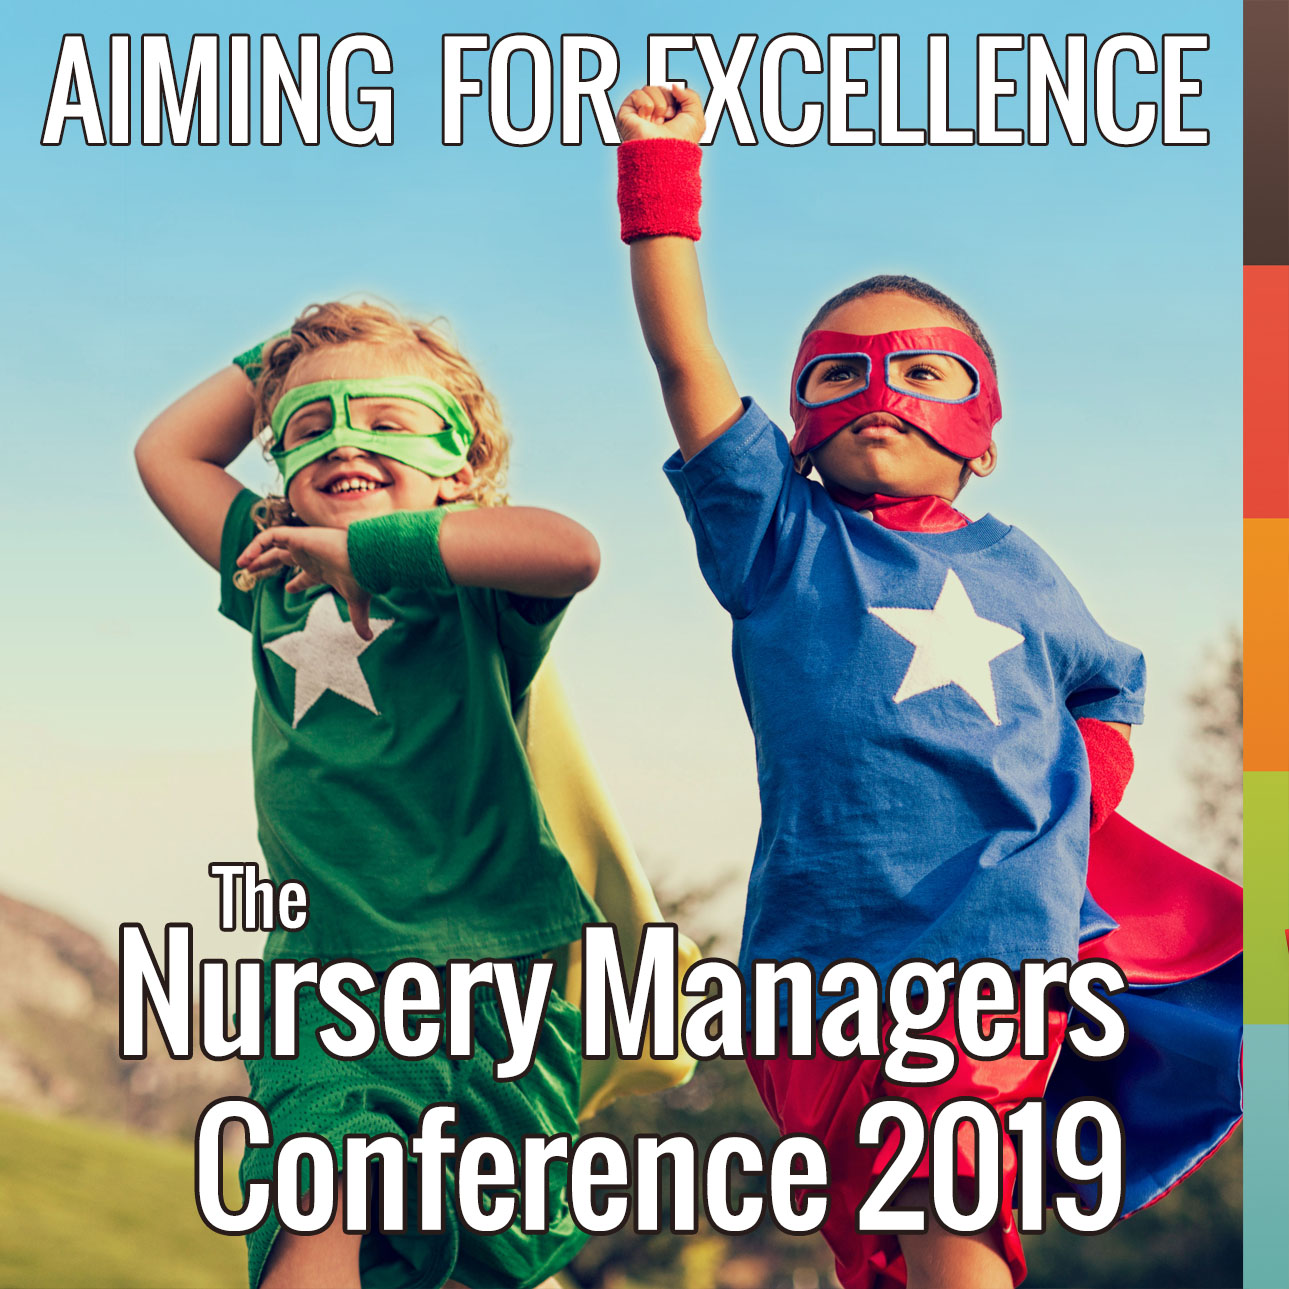 Hopscotch Announces Nursery Managers Conference 2019